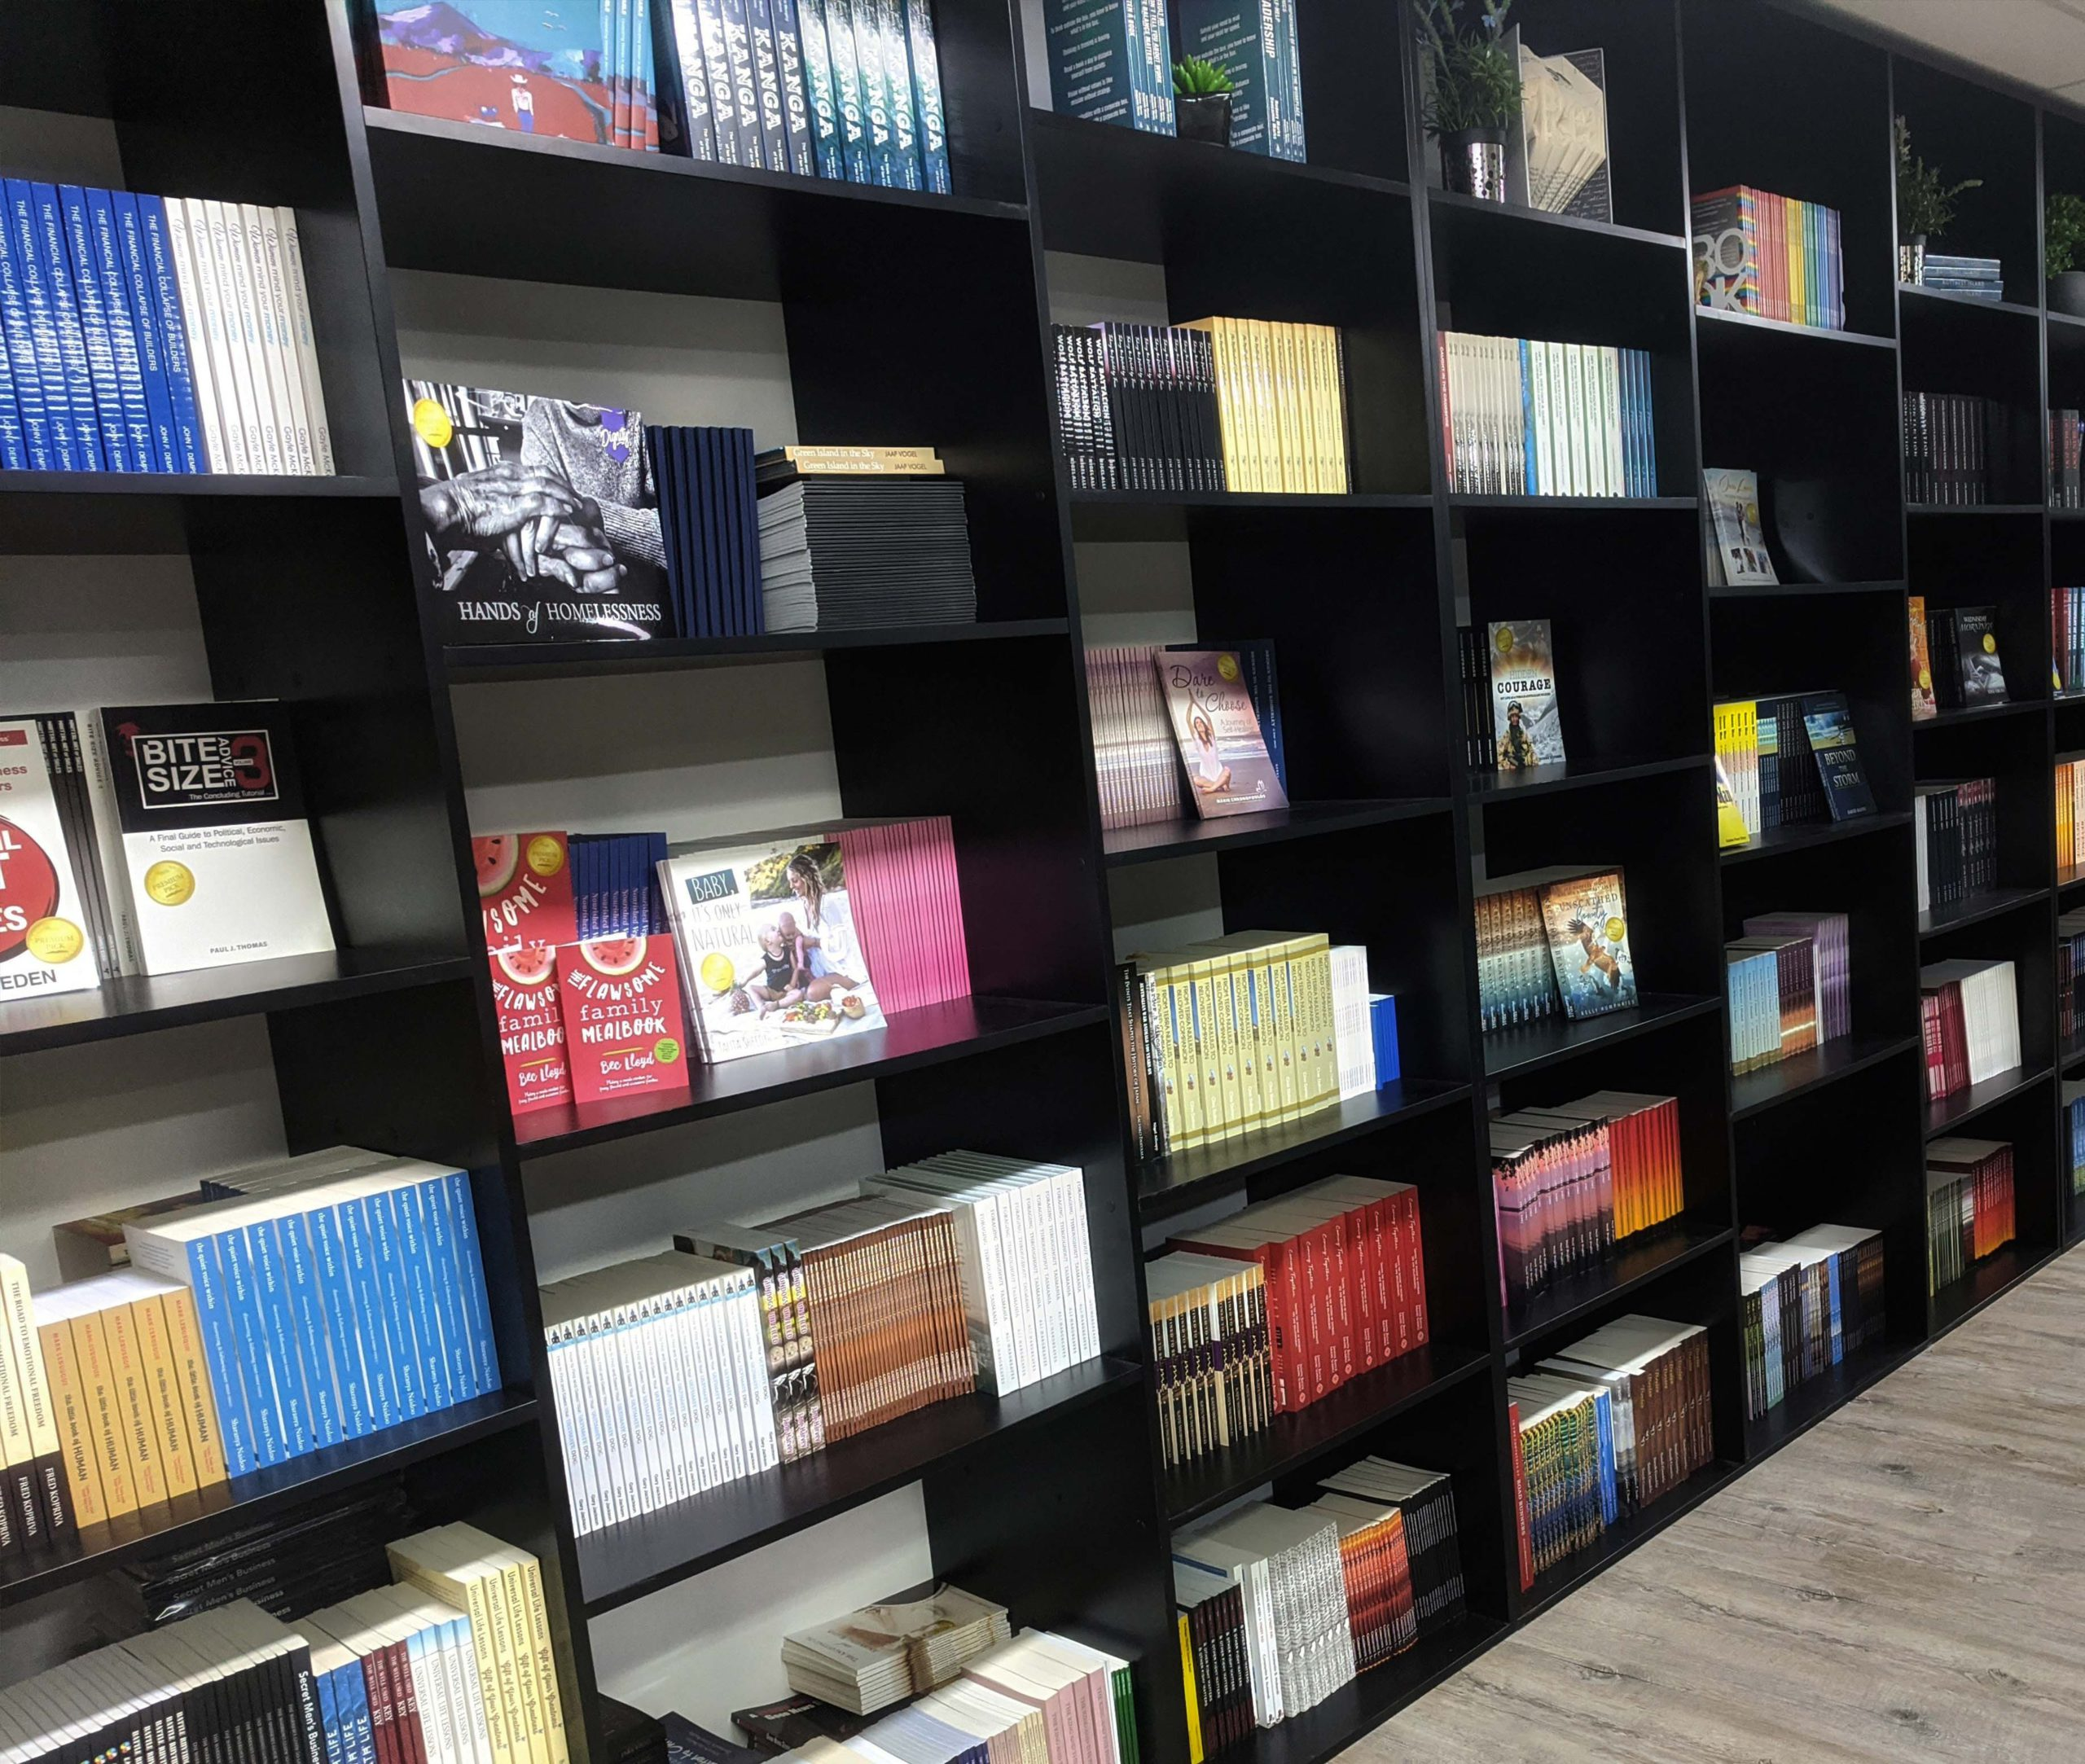 An image of the InHouse Bookstore bookshelves. The books are arranged by title.